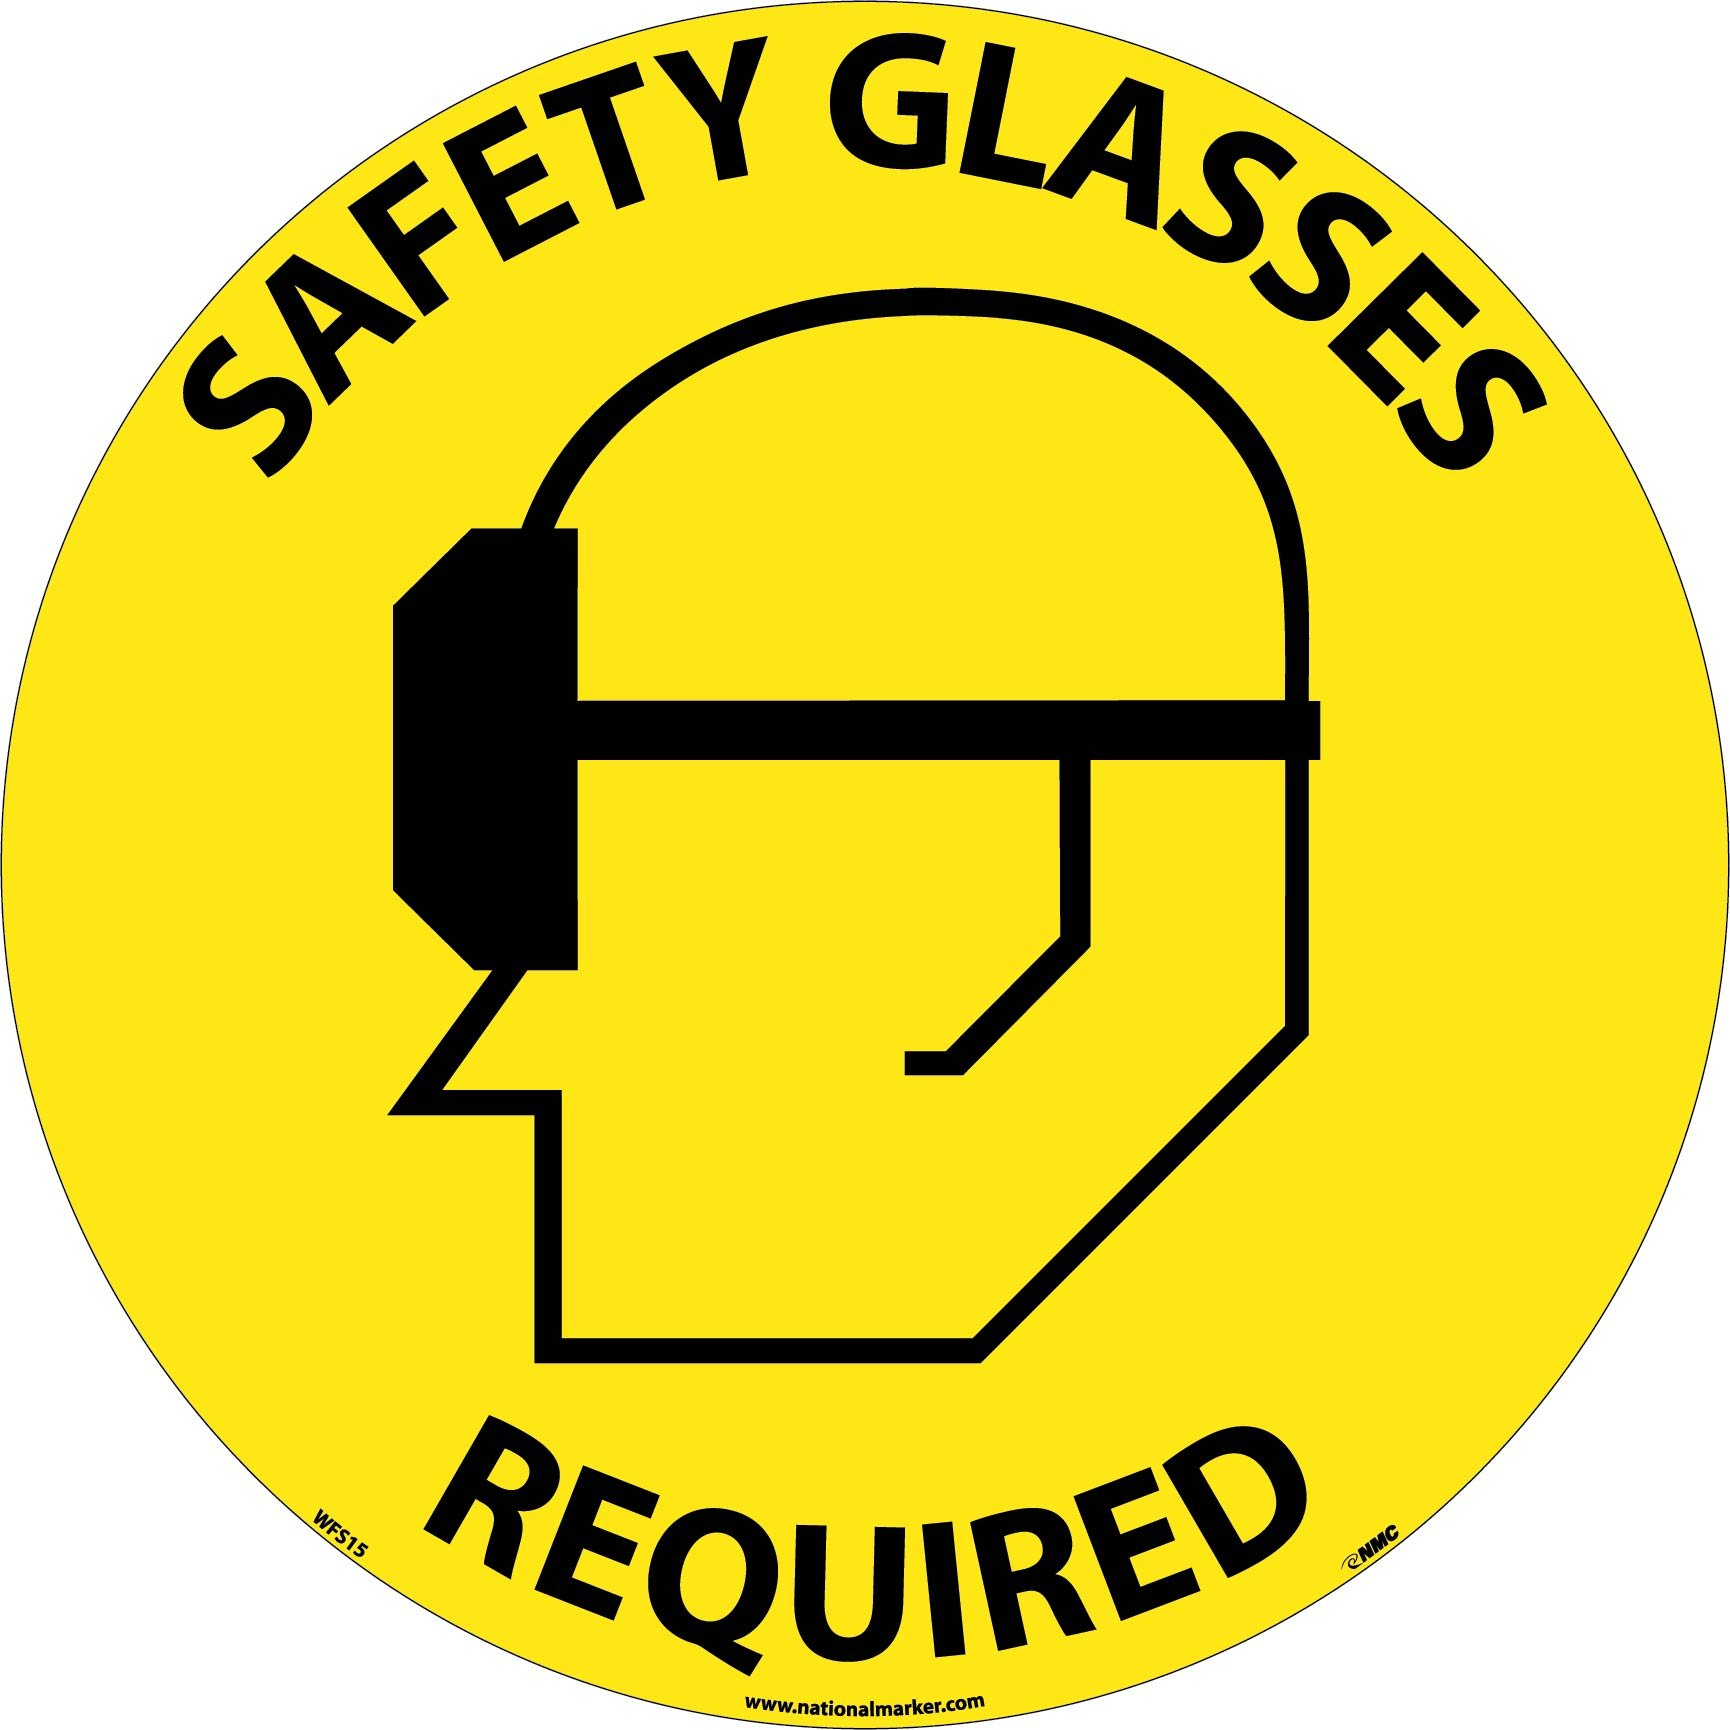 Free Hazard Signs And Safety Symbols